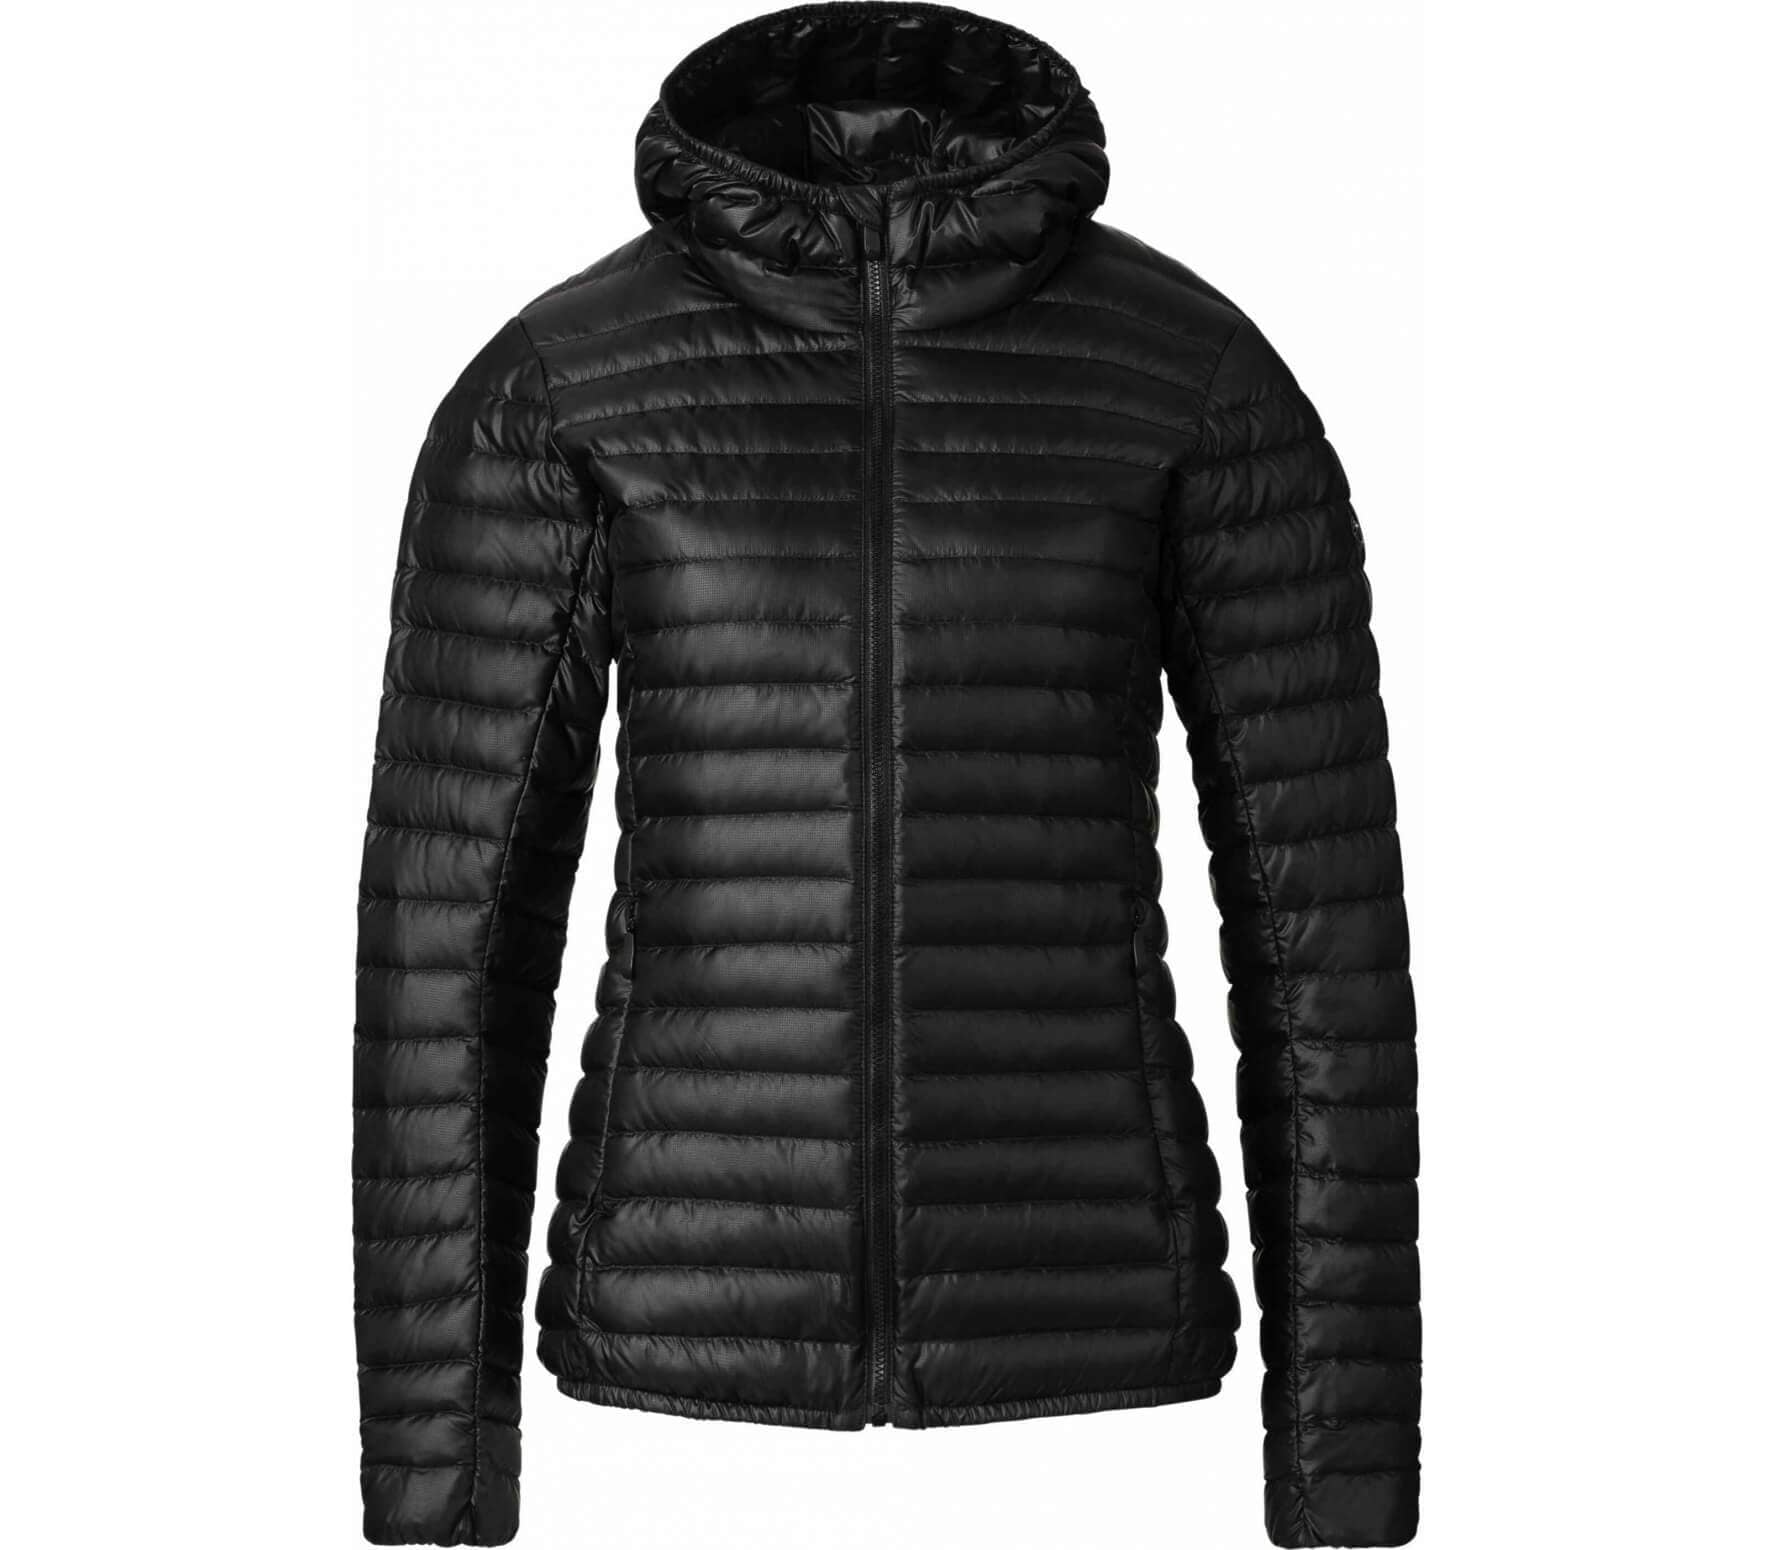 a5671ce7b92 Kjus - Cypress Hooded women s down jacket (black) - buy it at the ...